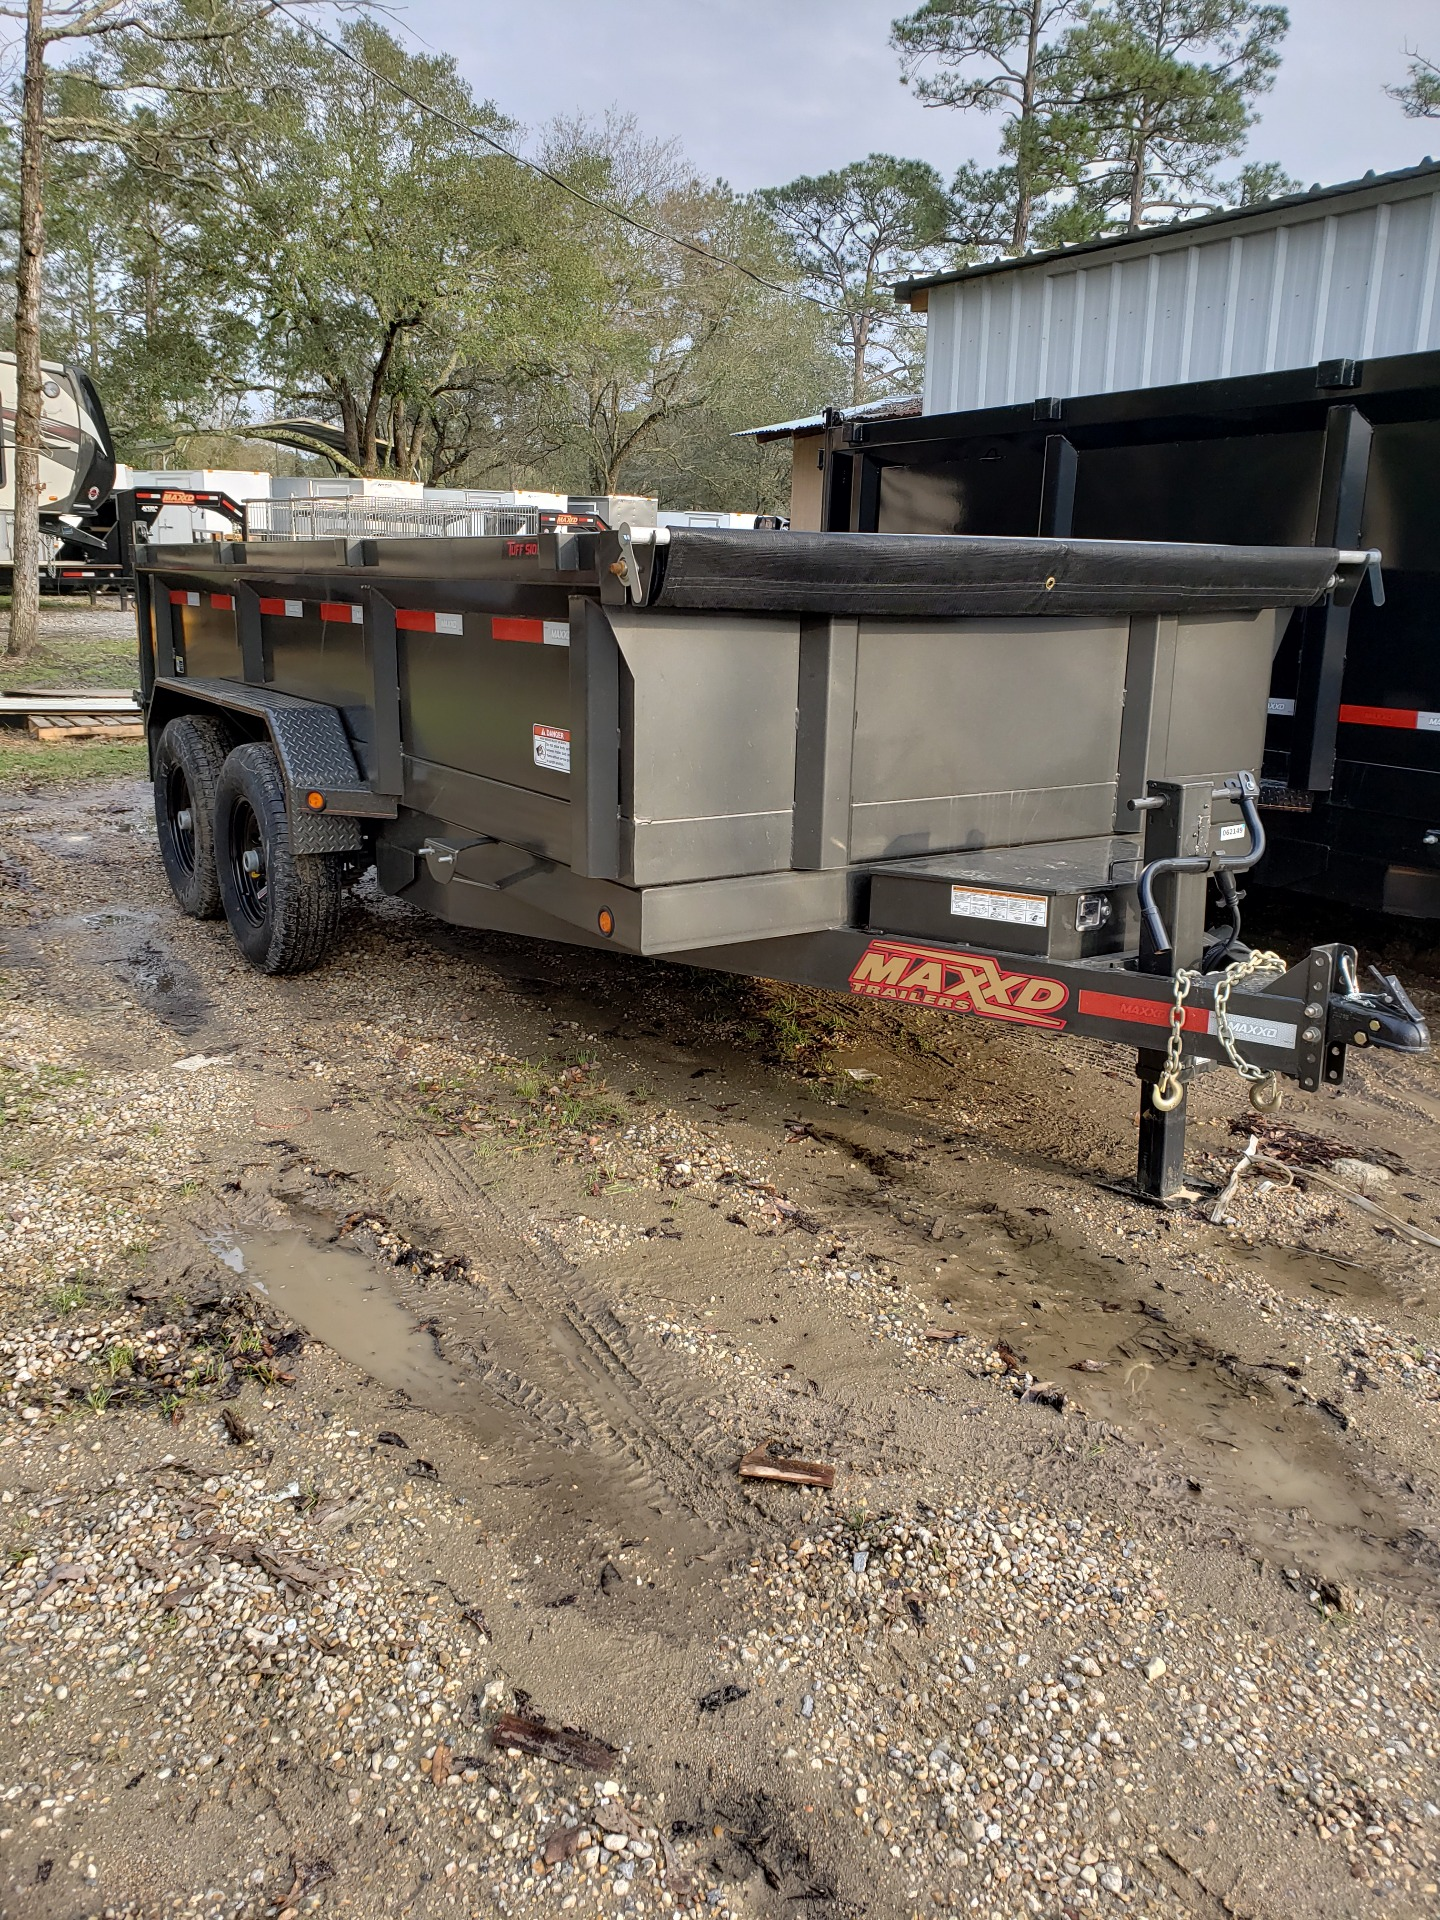 2019 MaxxD Trailers 14 x 83 HD Dump in Pearl River, Louisiana - Photo 1